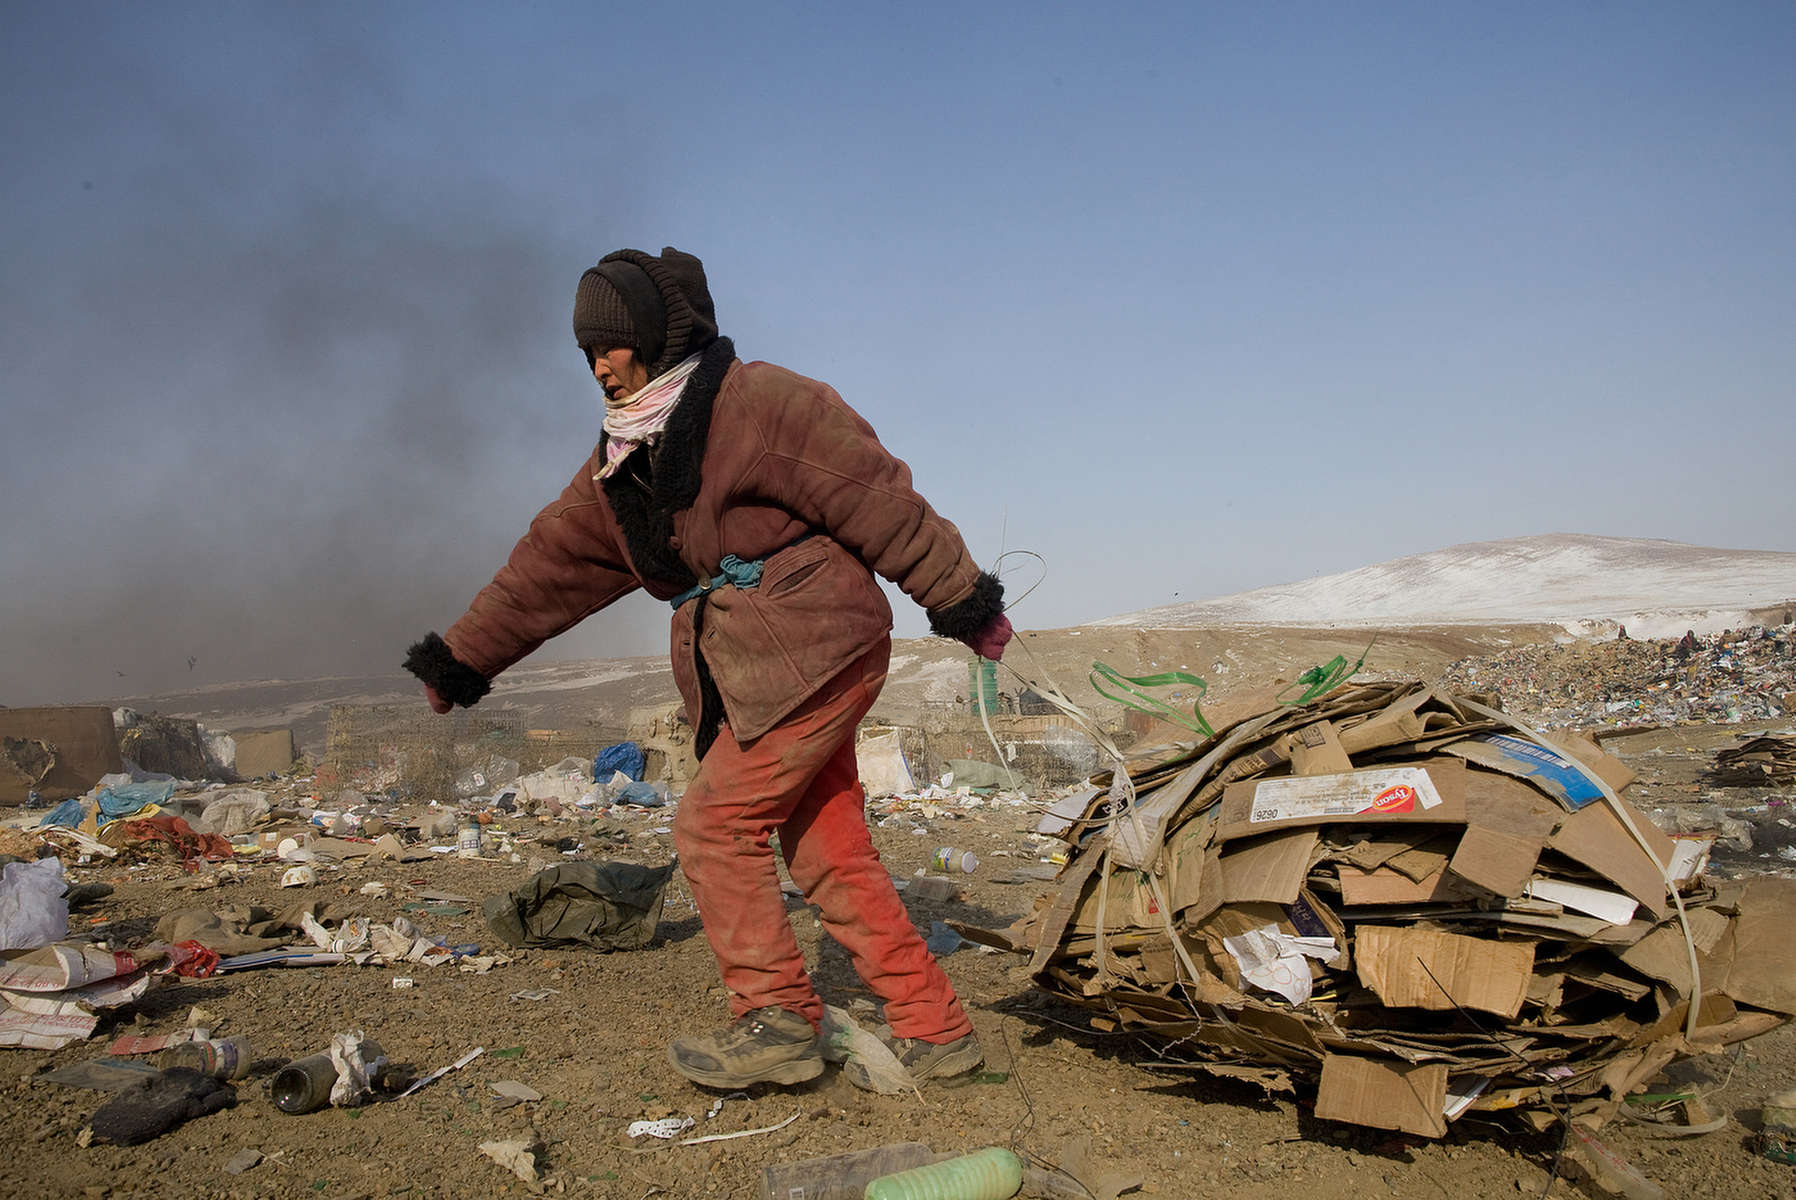 ULAAN BAATAR, MONGOLIA-MARCH 5 :  A Mongolian woman drags cardboard to the truck working collecting and recycling the garbage at a dump March 5, 2010  in Ulaan Baatar, Mongolia. Working at the garbage dump means extreme hardship, long hours outside in frigid temperatures dropping below -25C in the Winter as Mongolia experienced one of the worst Winter in 30 years. Presently the government has declared an emergency requiring foreign aid to alleviate the impact of the {quote} Zud{quote} ( Mongolian term for a multiple natural disaster) caused by bitter cold and thick snow. Currently 1.5 million goats,  921,000 sheep, 169,000 cows and yaks, 89,000 horses and 1,500 camels had died according to the various UN agency reports. Many Mongolians have immigrated to the capitol city from the far away provinces seeking employment, living in rented traditional circular felt yurts with no running water or electricity.(Photo by Paula Bronstein /Getty Images)